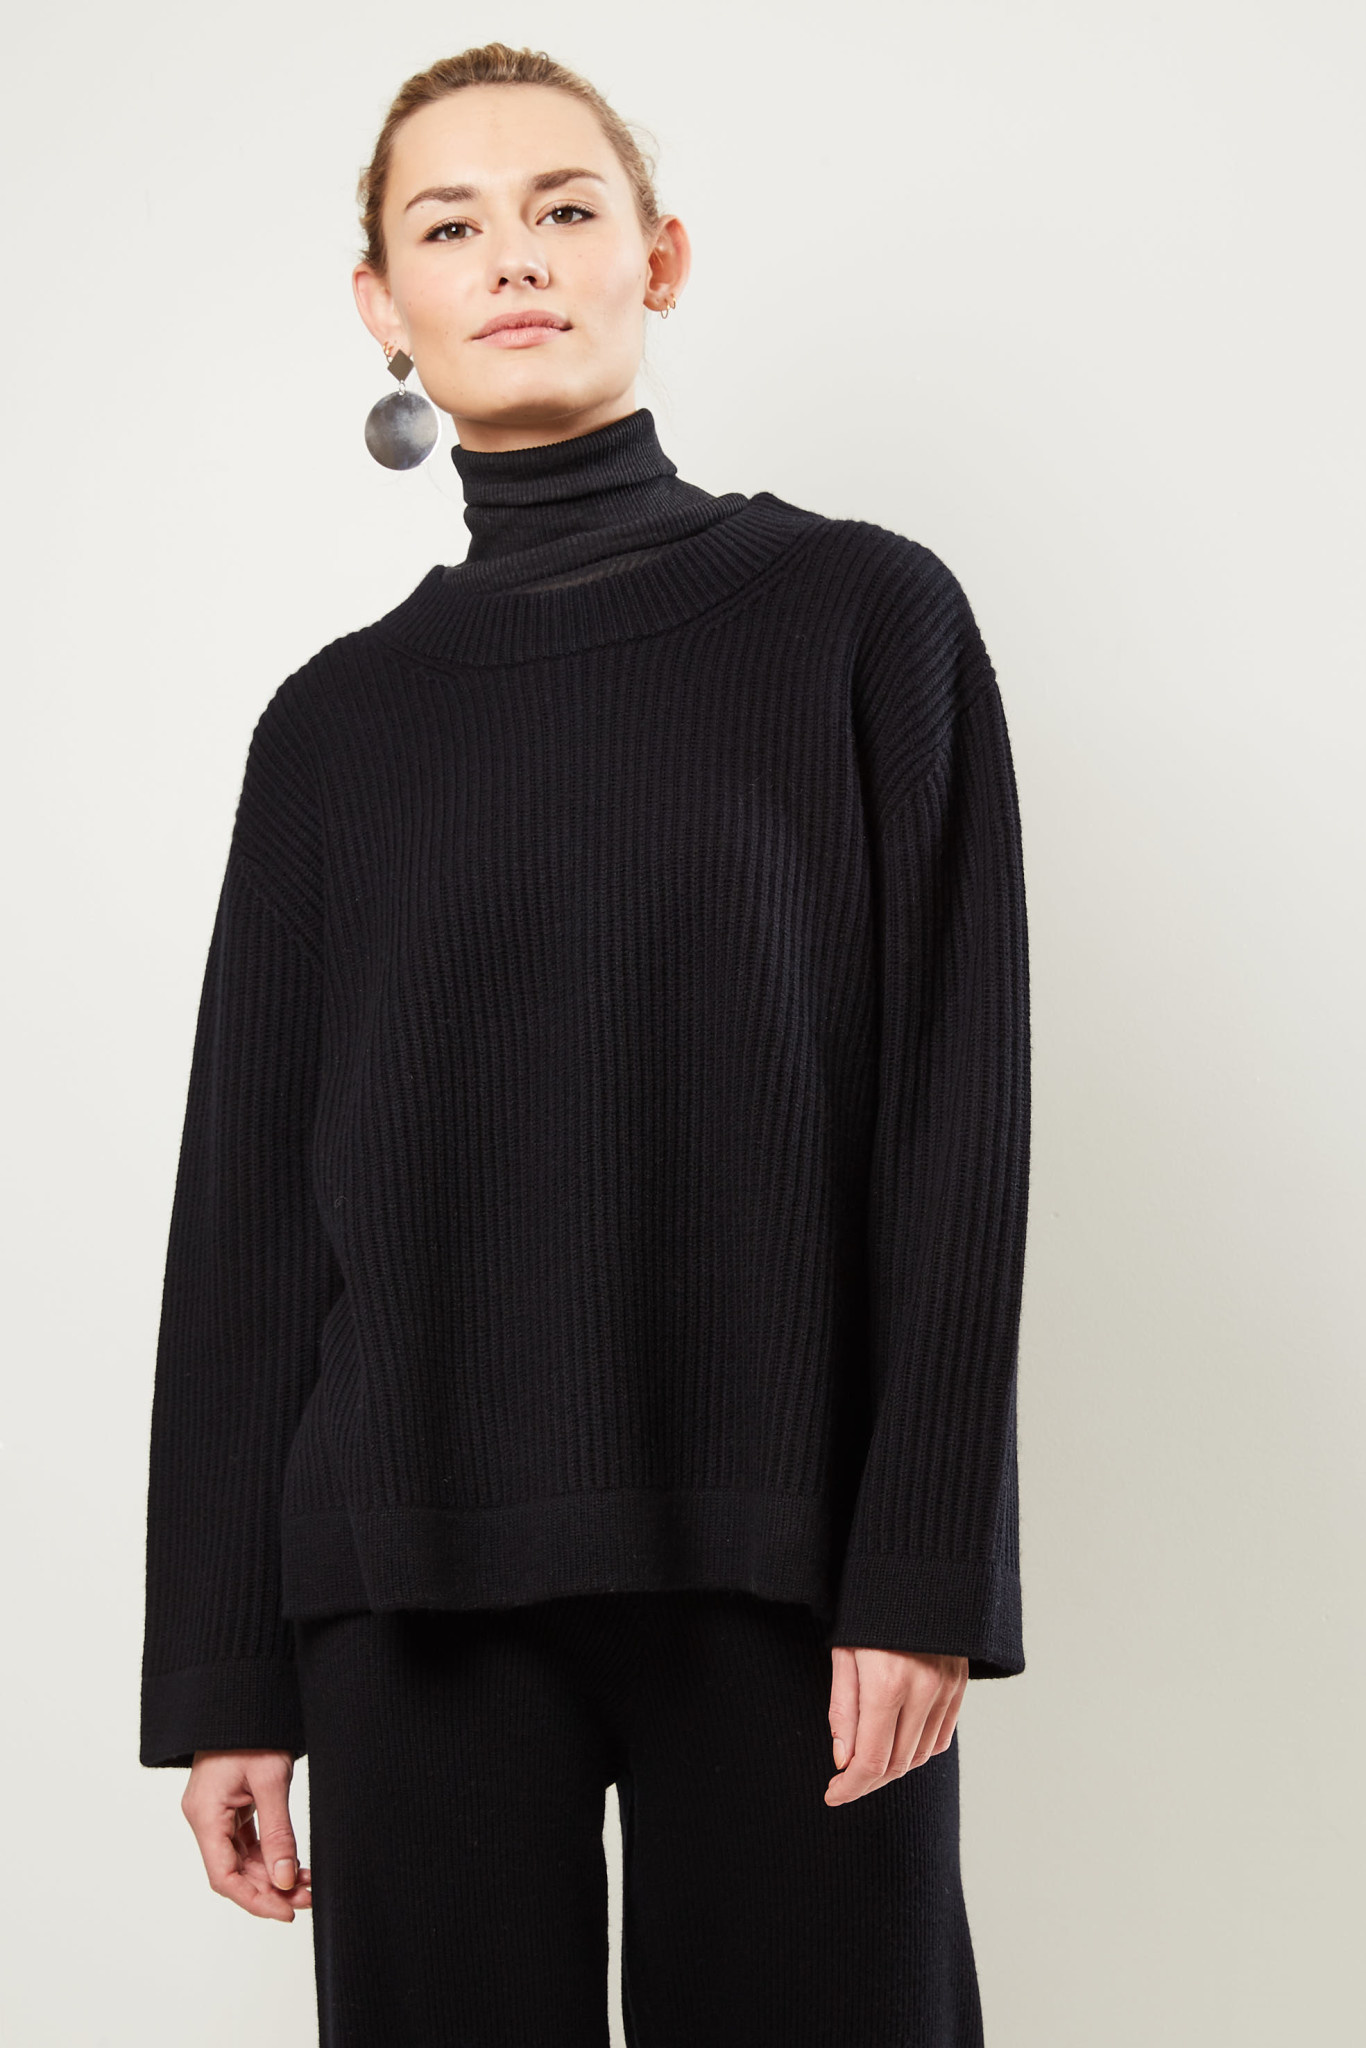 ÂME - Britney knitted top BL01